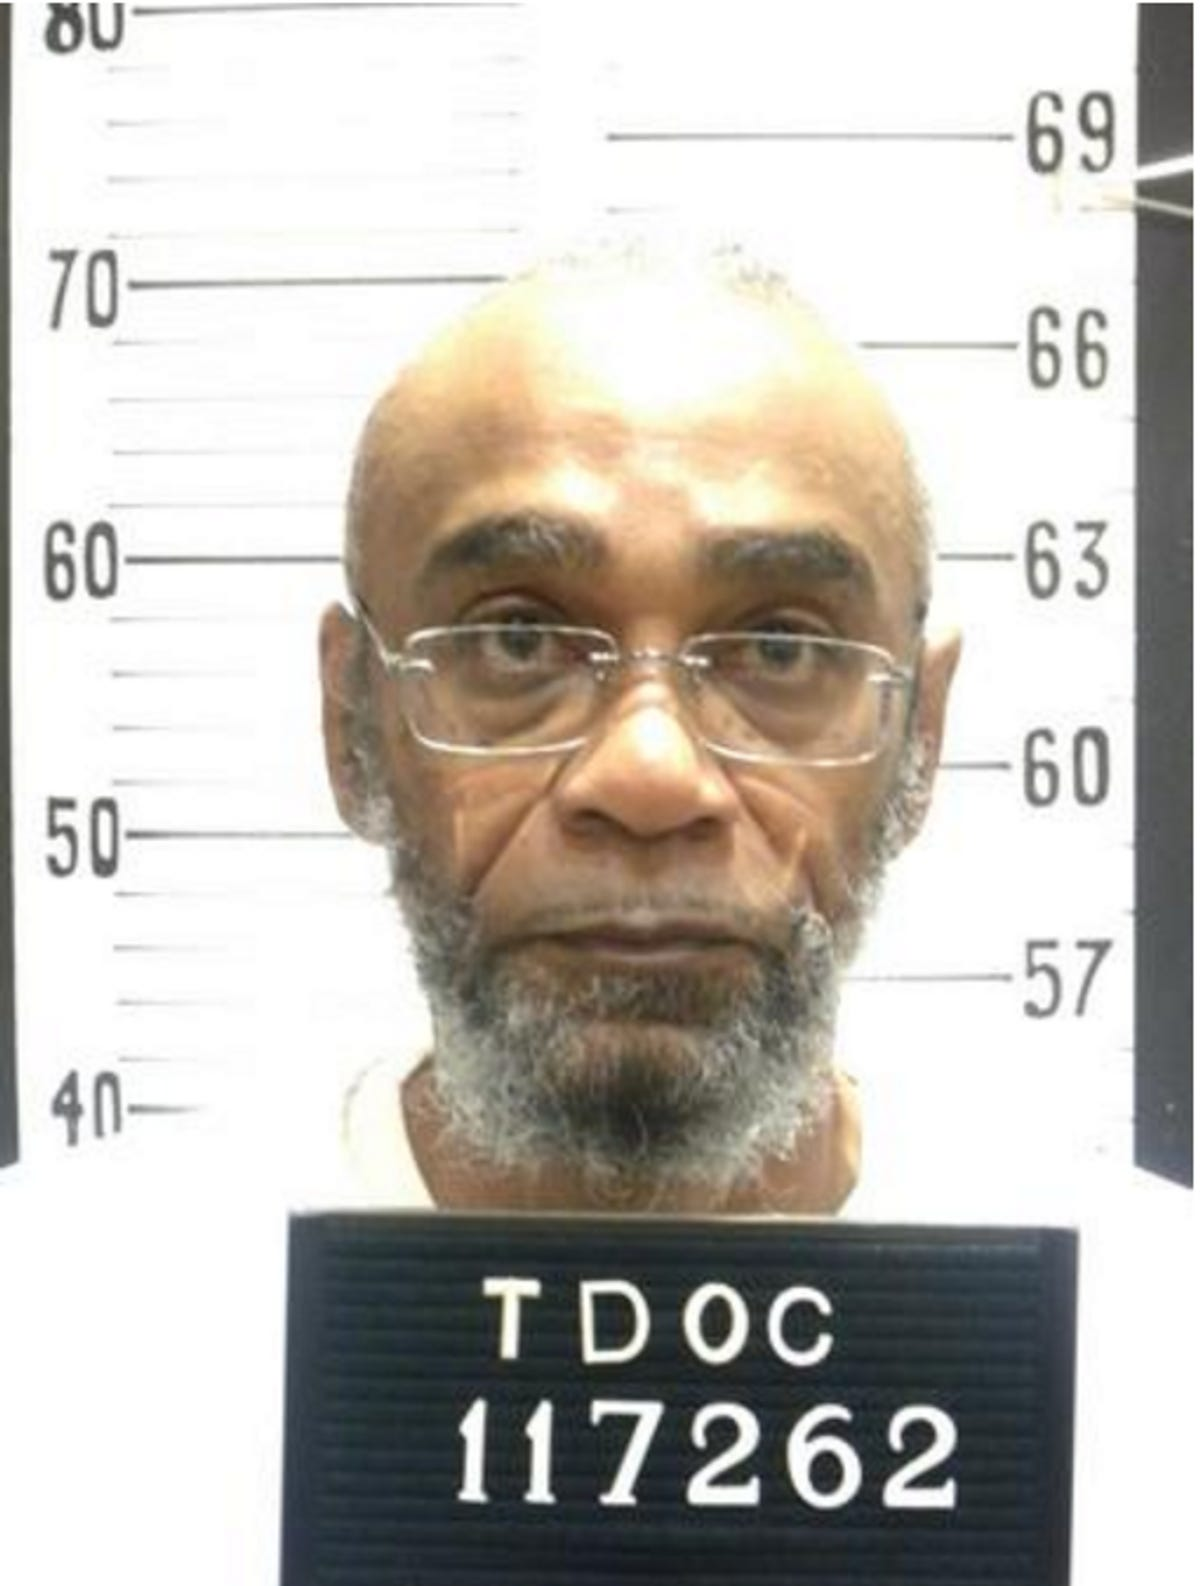 Prosecutors agree to vacate death sentence for Tennessee